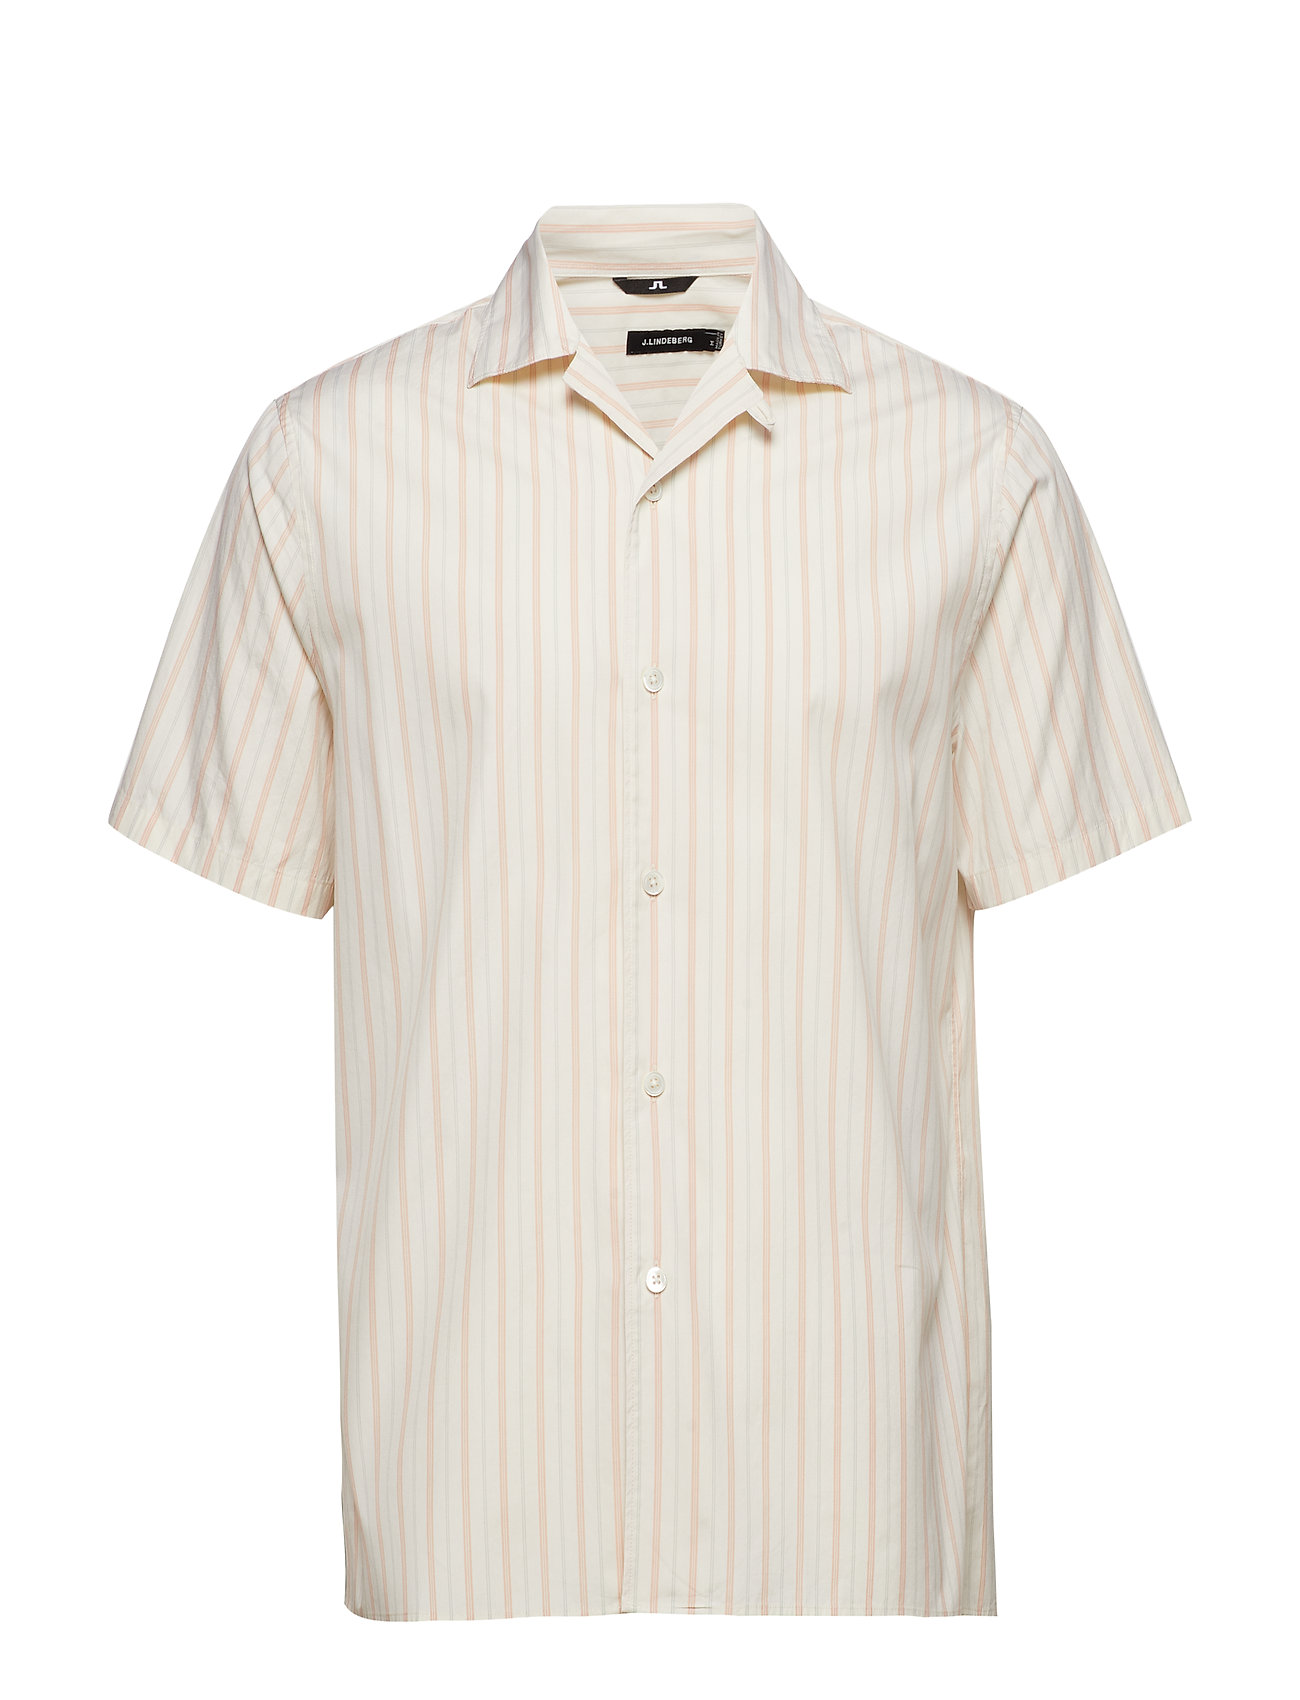 J. Lindeberg David SS Resort-Pop Stripe - SUMMER BEIGE